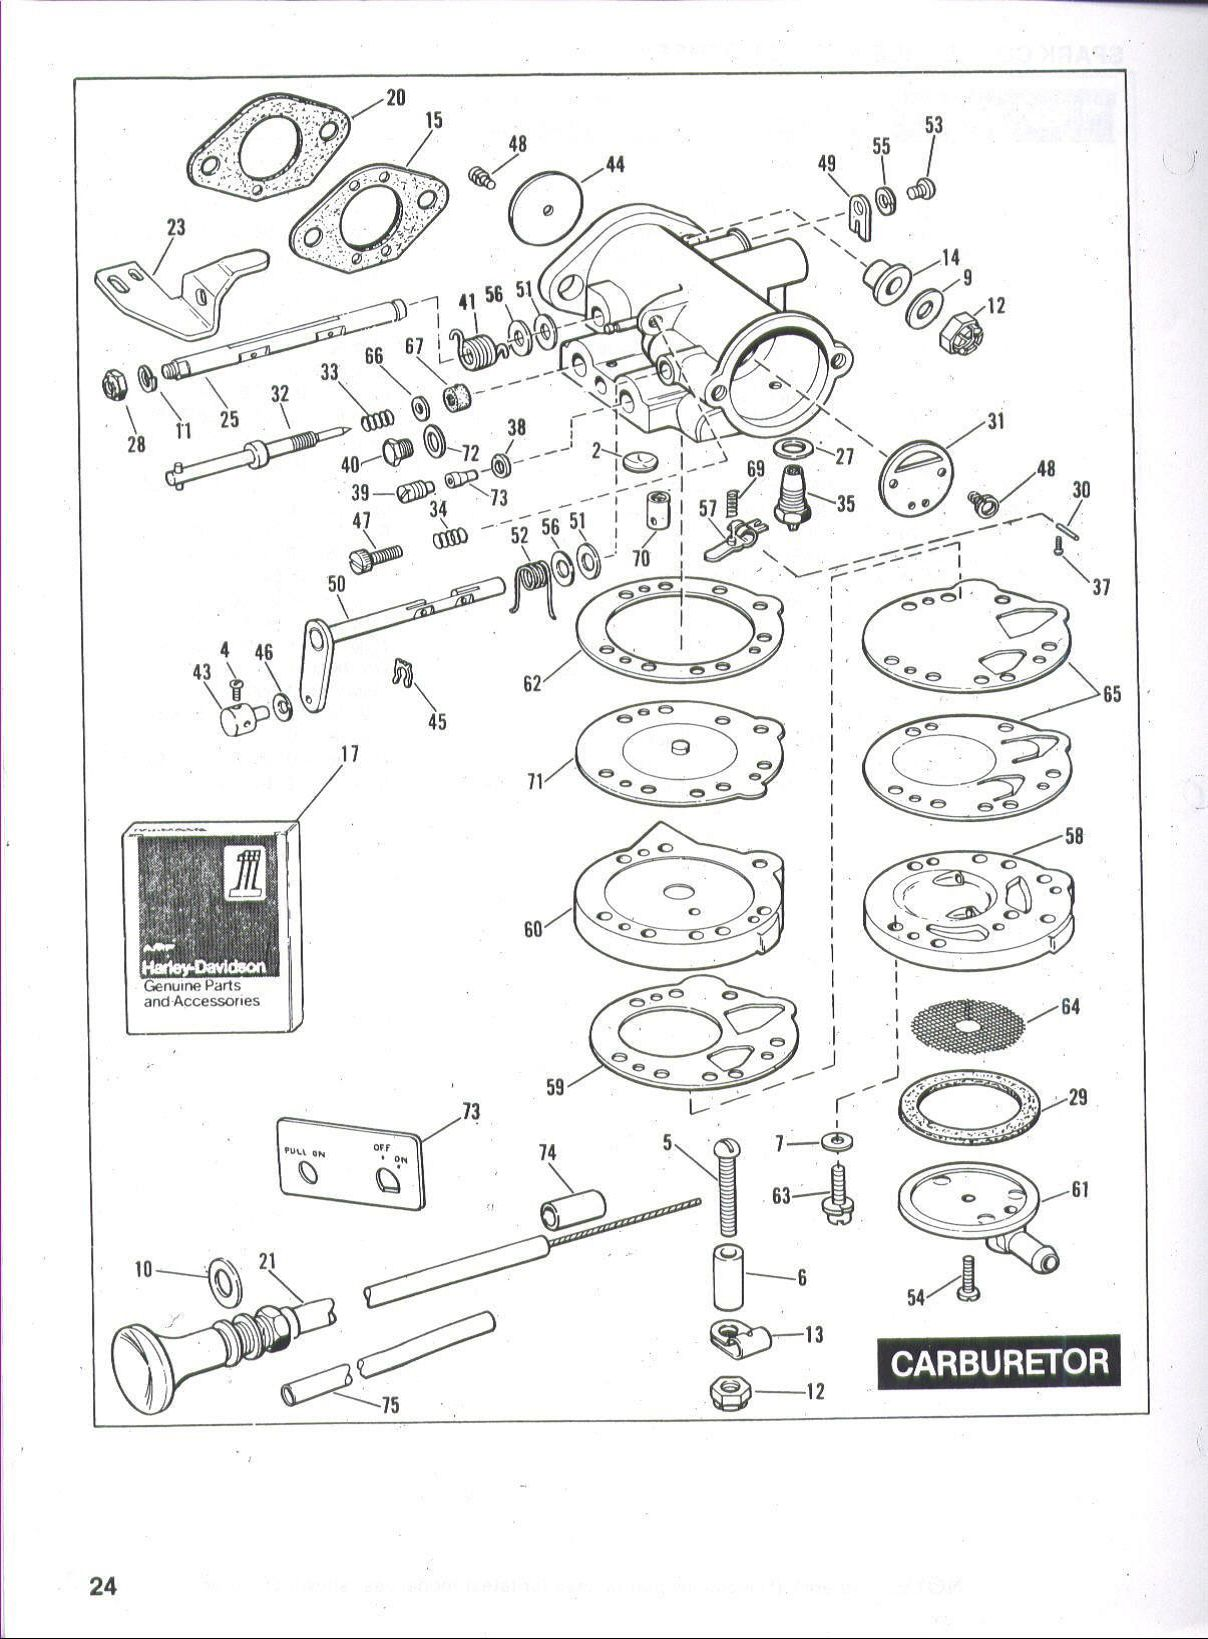 harley golf cart engine diagram